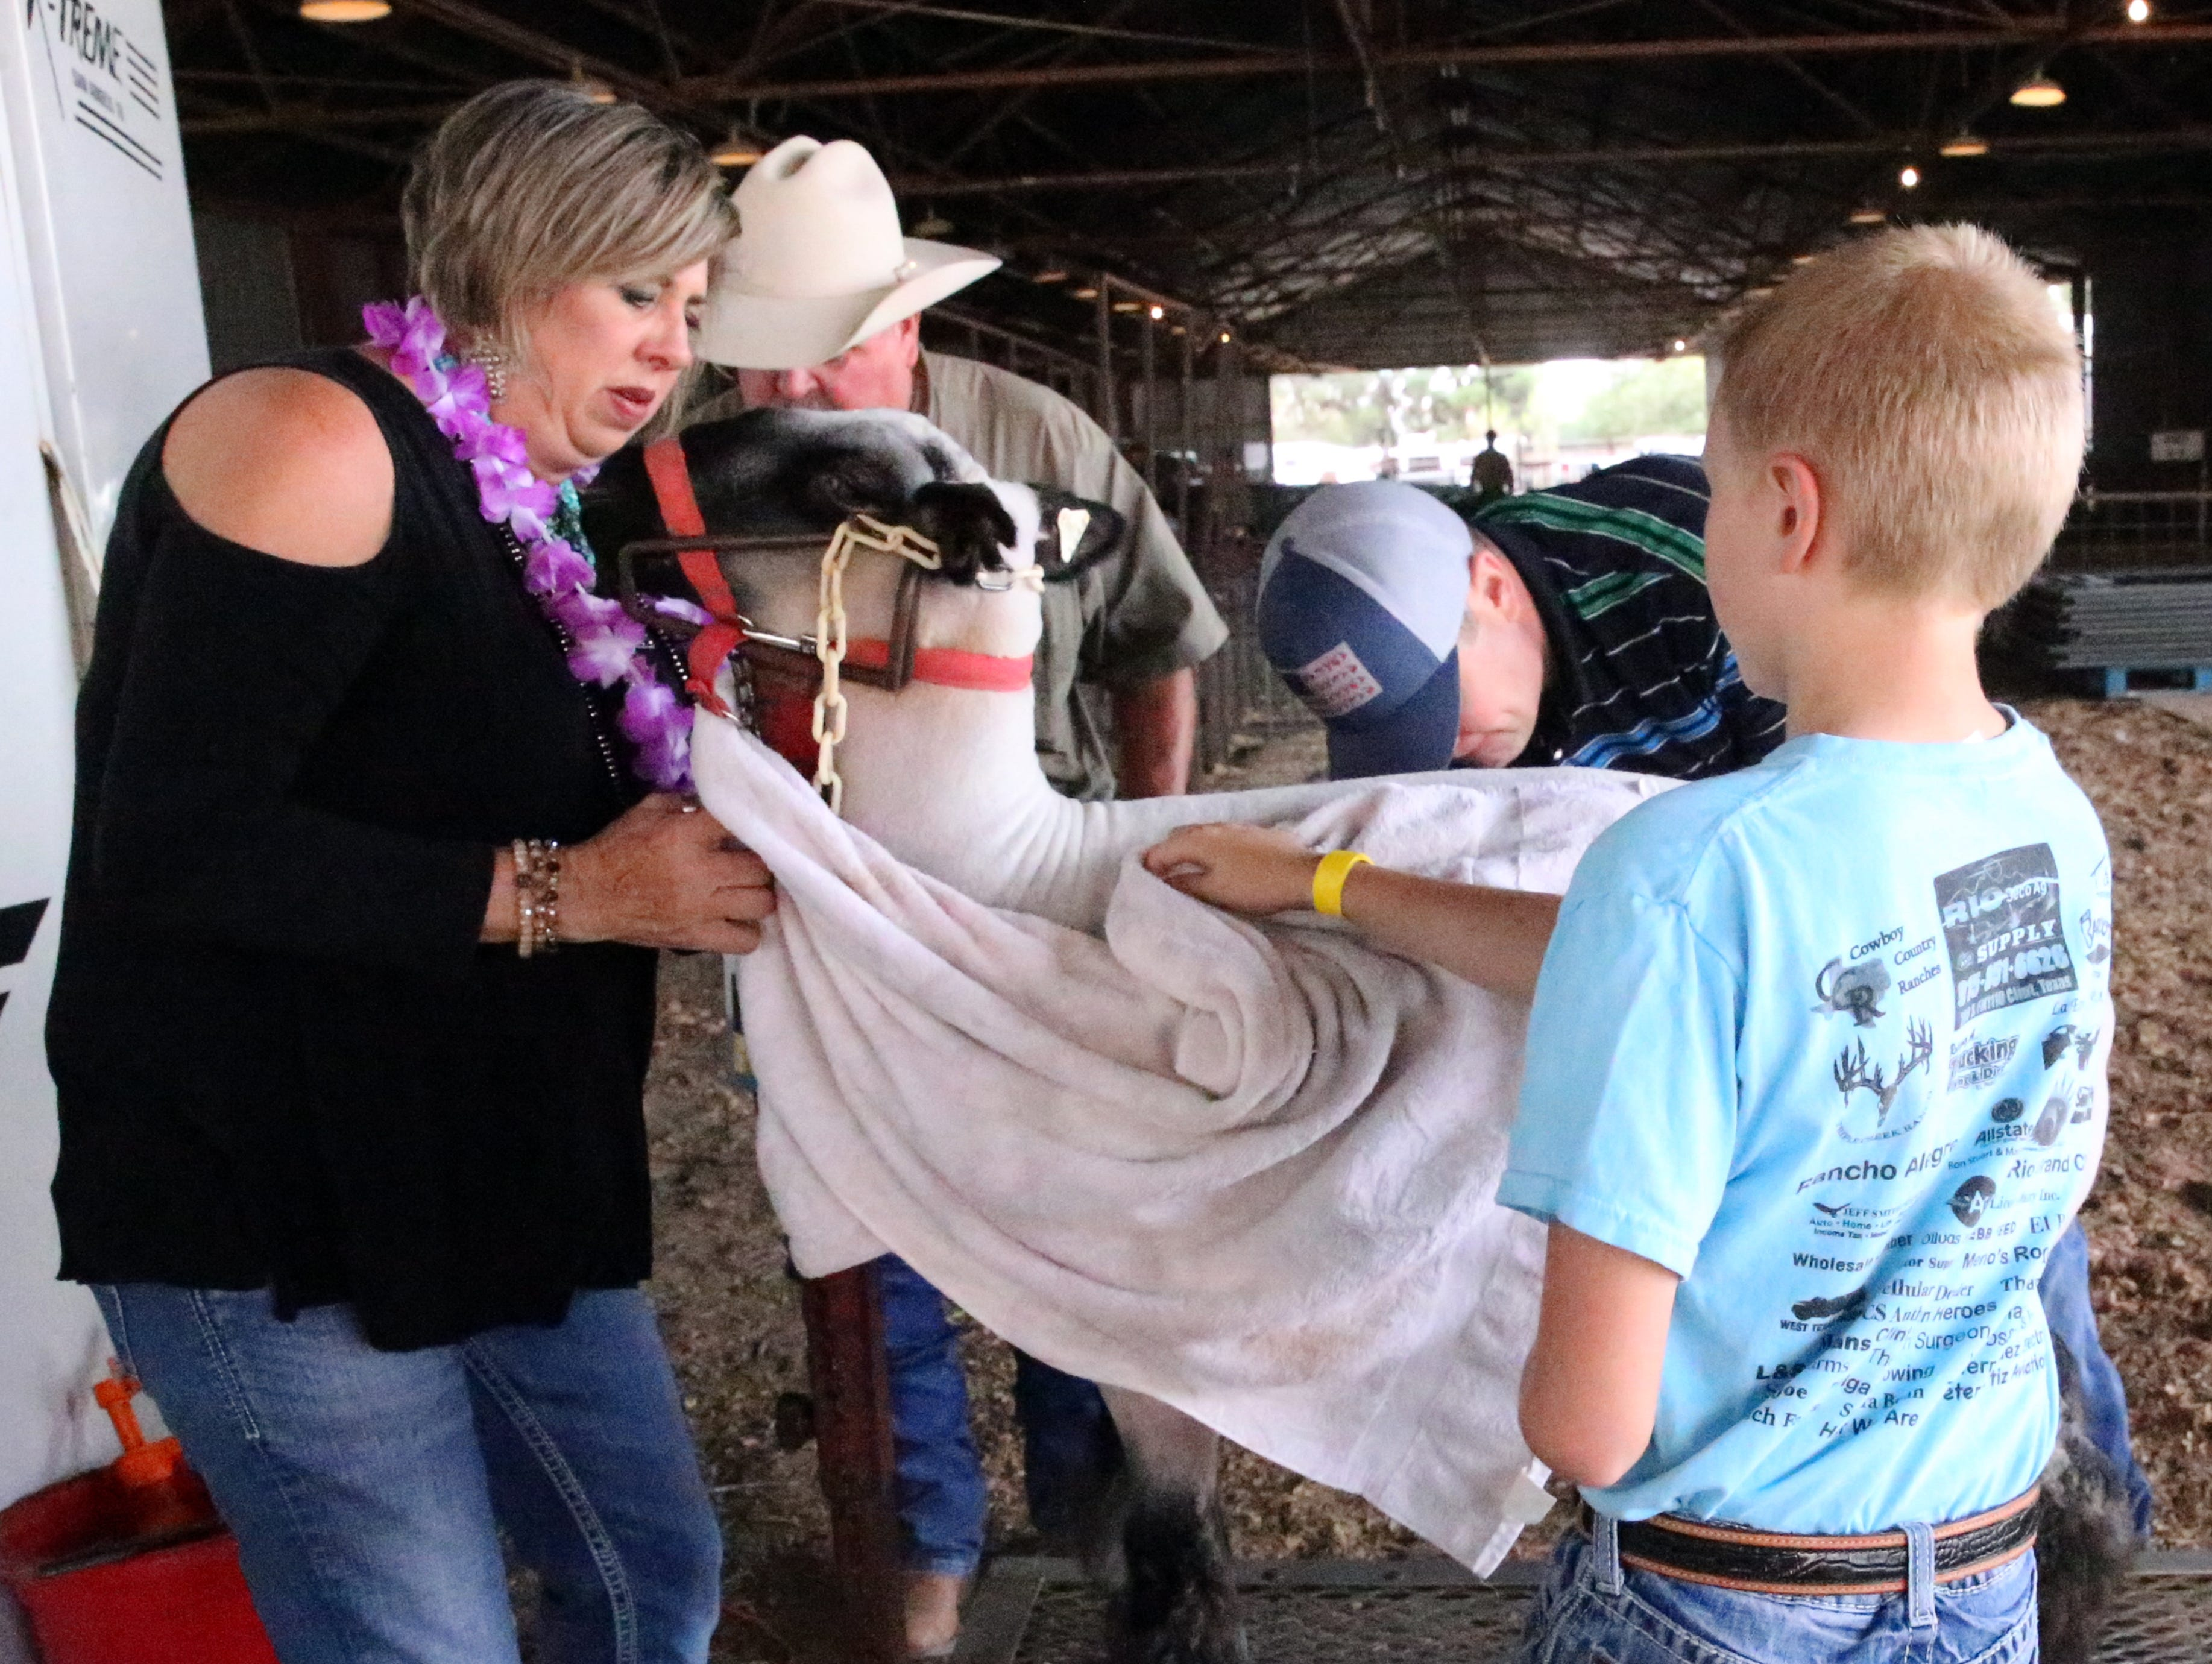 Shandra Giraud, left, of Clint, helps children prepare a market lamb for auction Saturday.